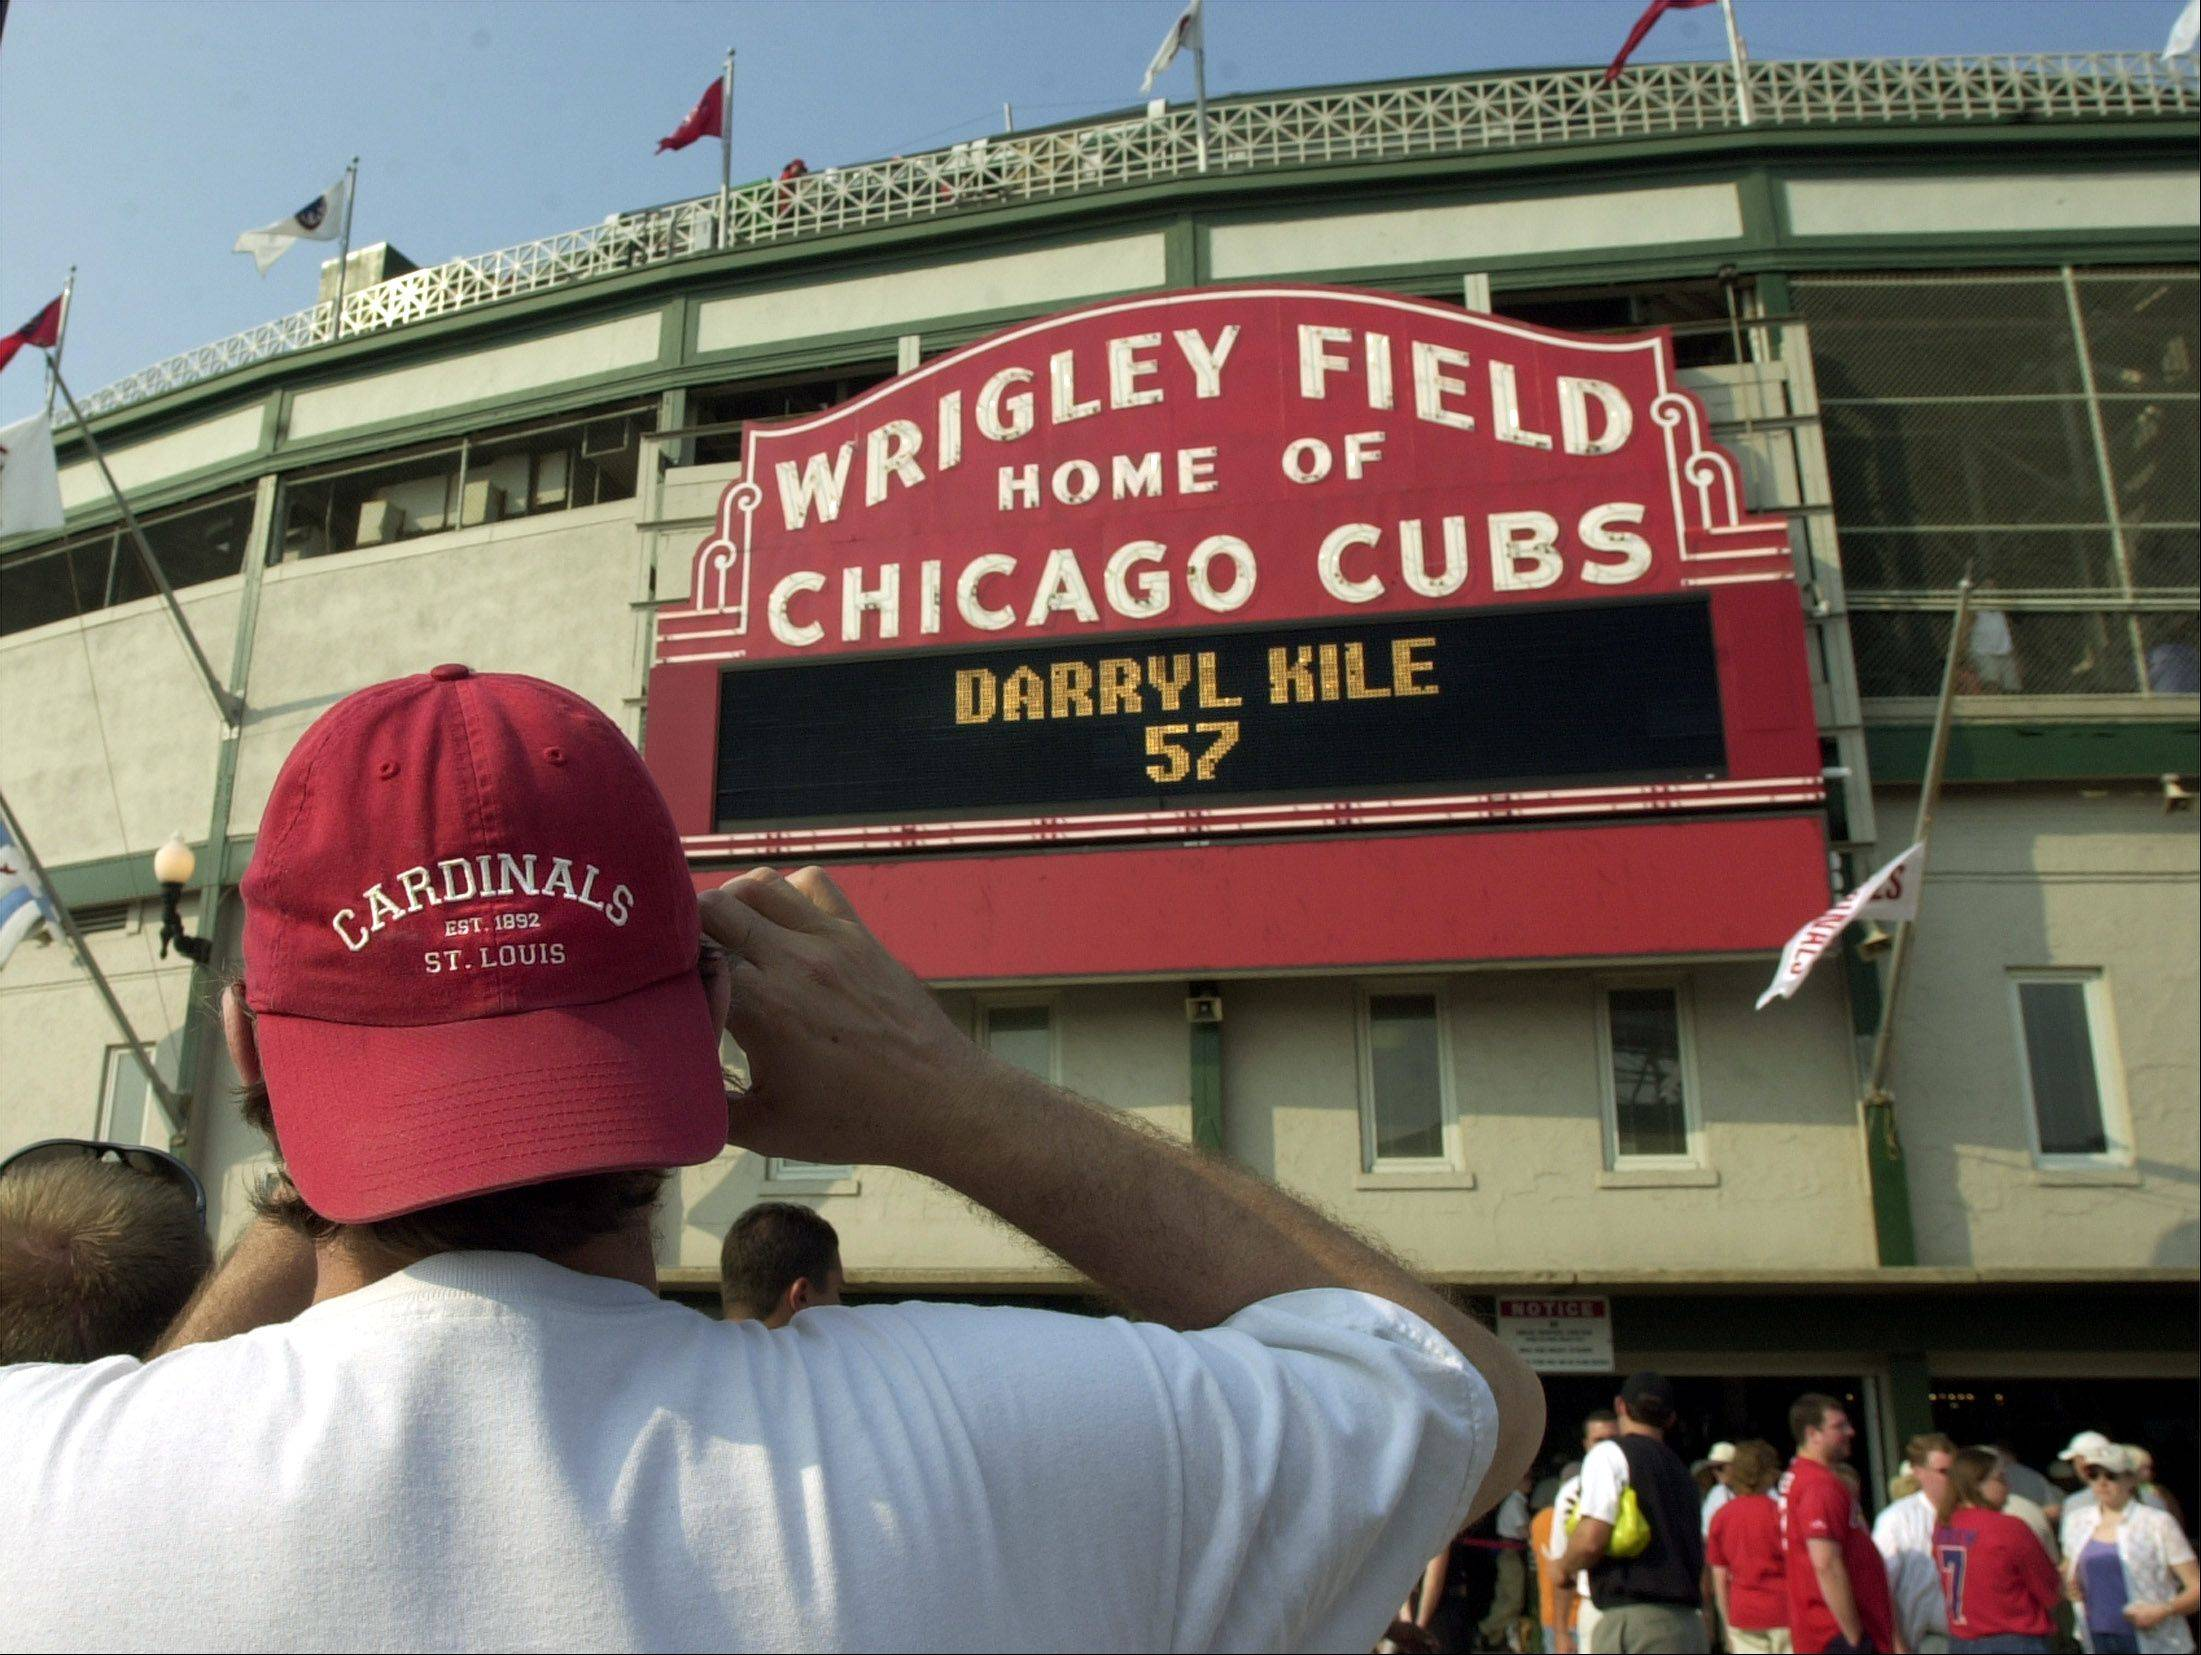 City, Cubs agree on new signs at Wrigley